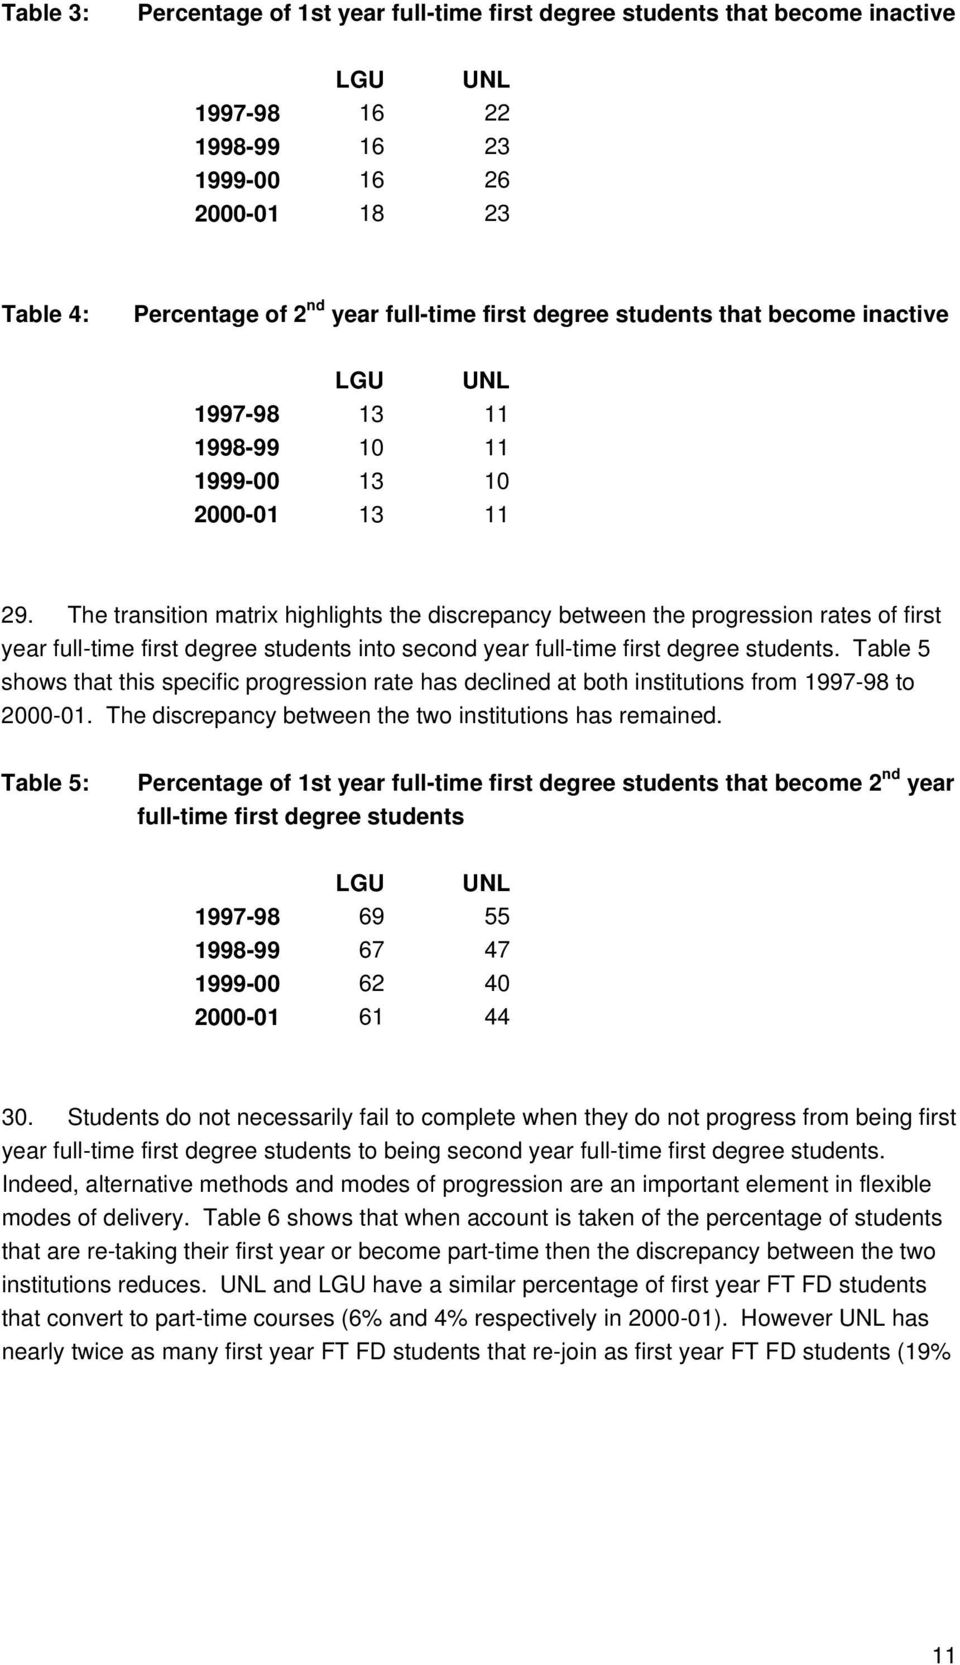 The transition matrix highlights the discrepancy between the progression rates of first year full-time first degree into second year full-time first degree.